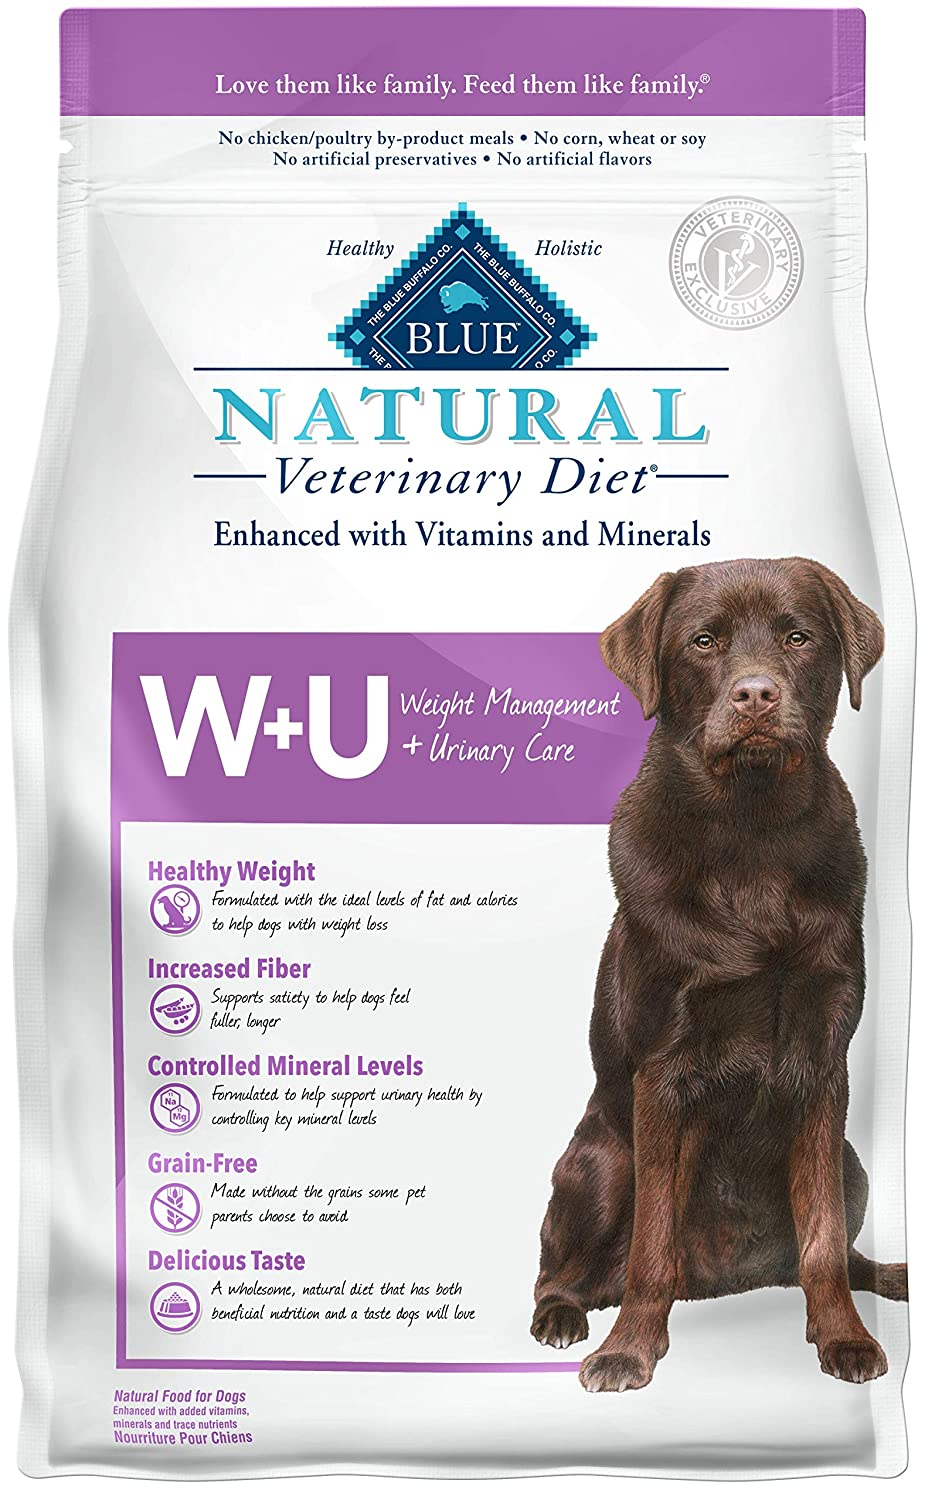 Top 5 Best Dog Food to Prevent Urinary Tract Infections - Buyer's Guide 4